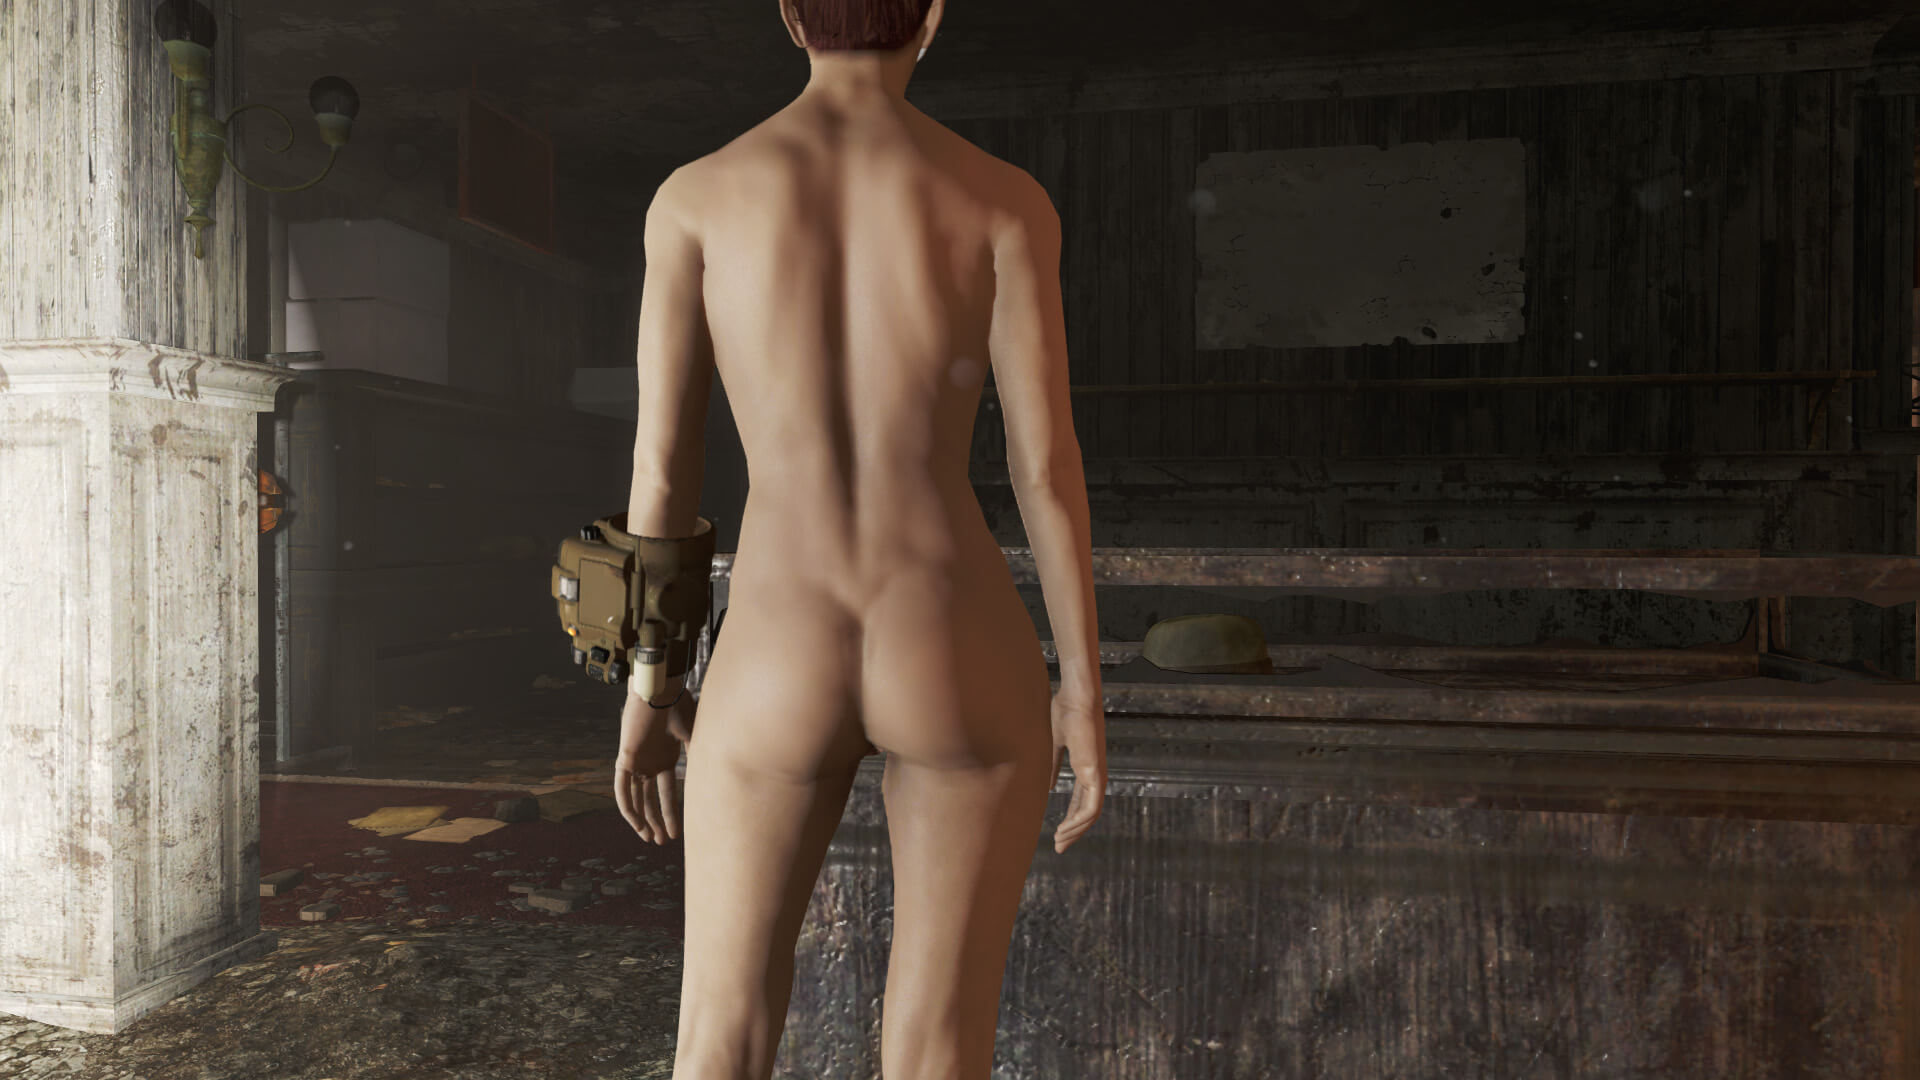 Fallout 4 naked chicks naked clip